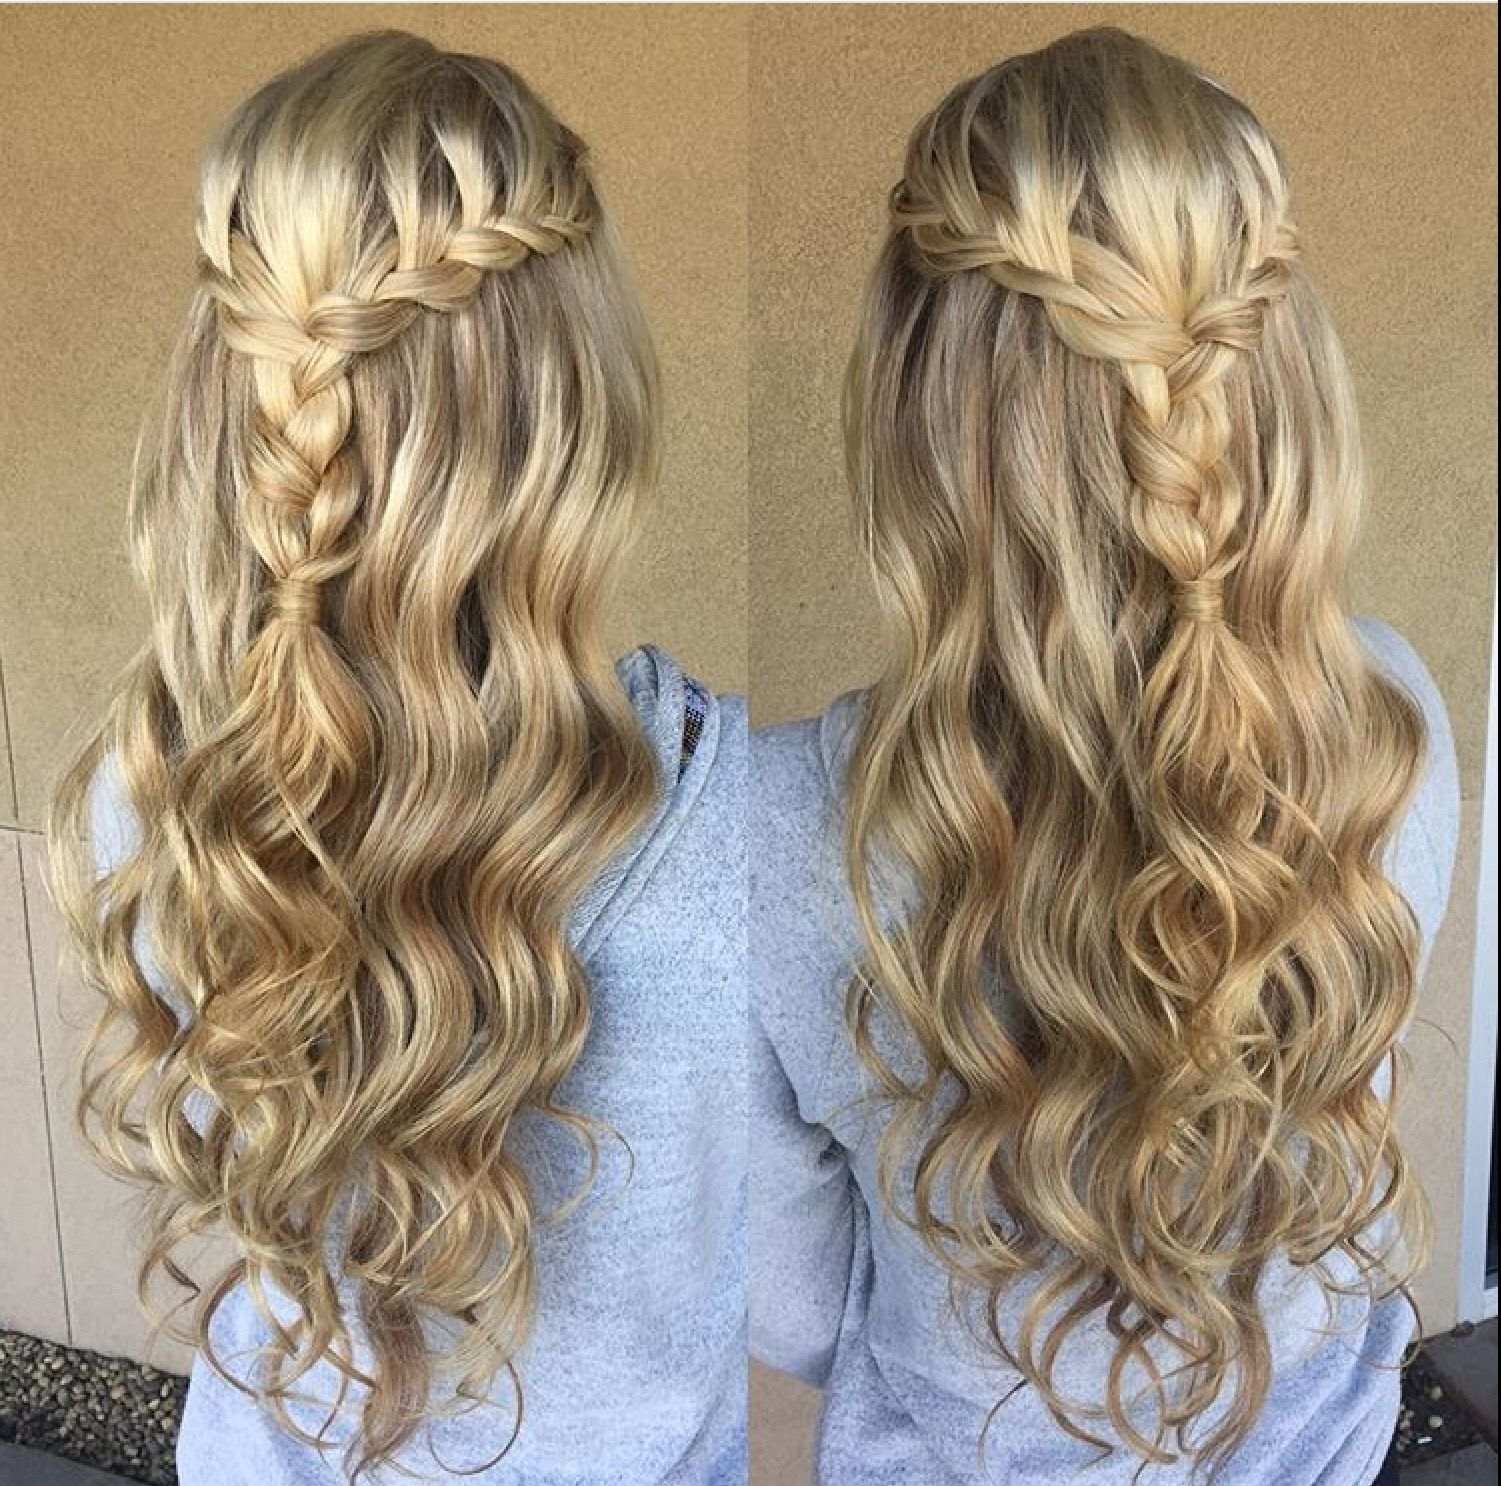 hairstyles for long hair for formal | cute hair dos | long